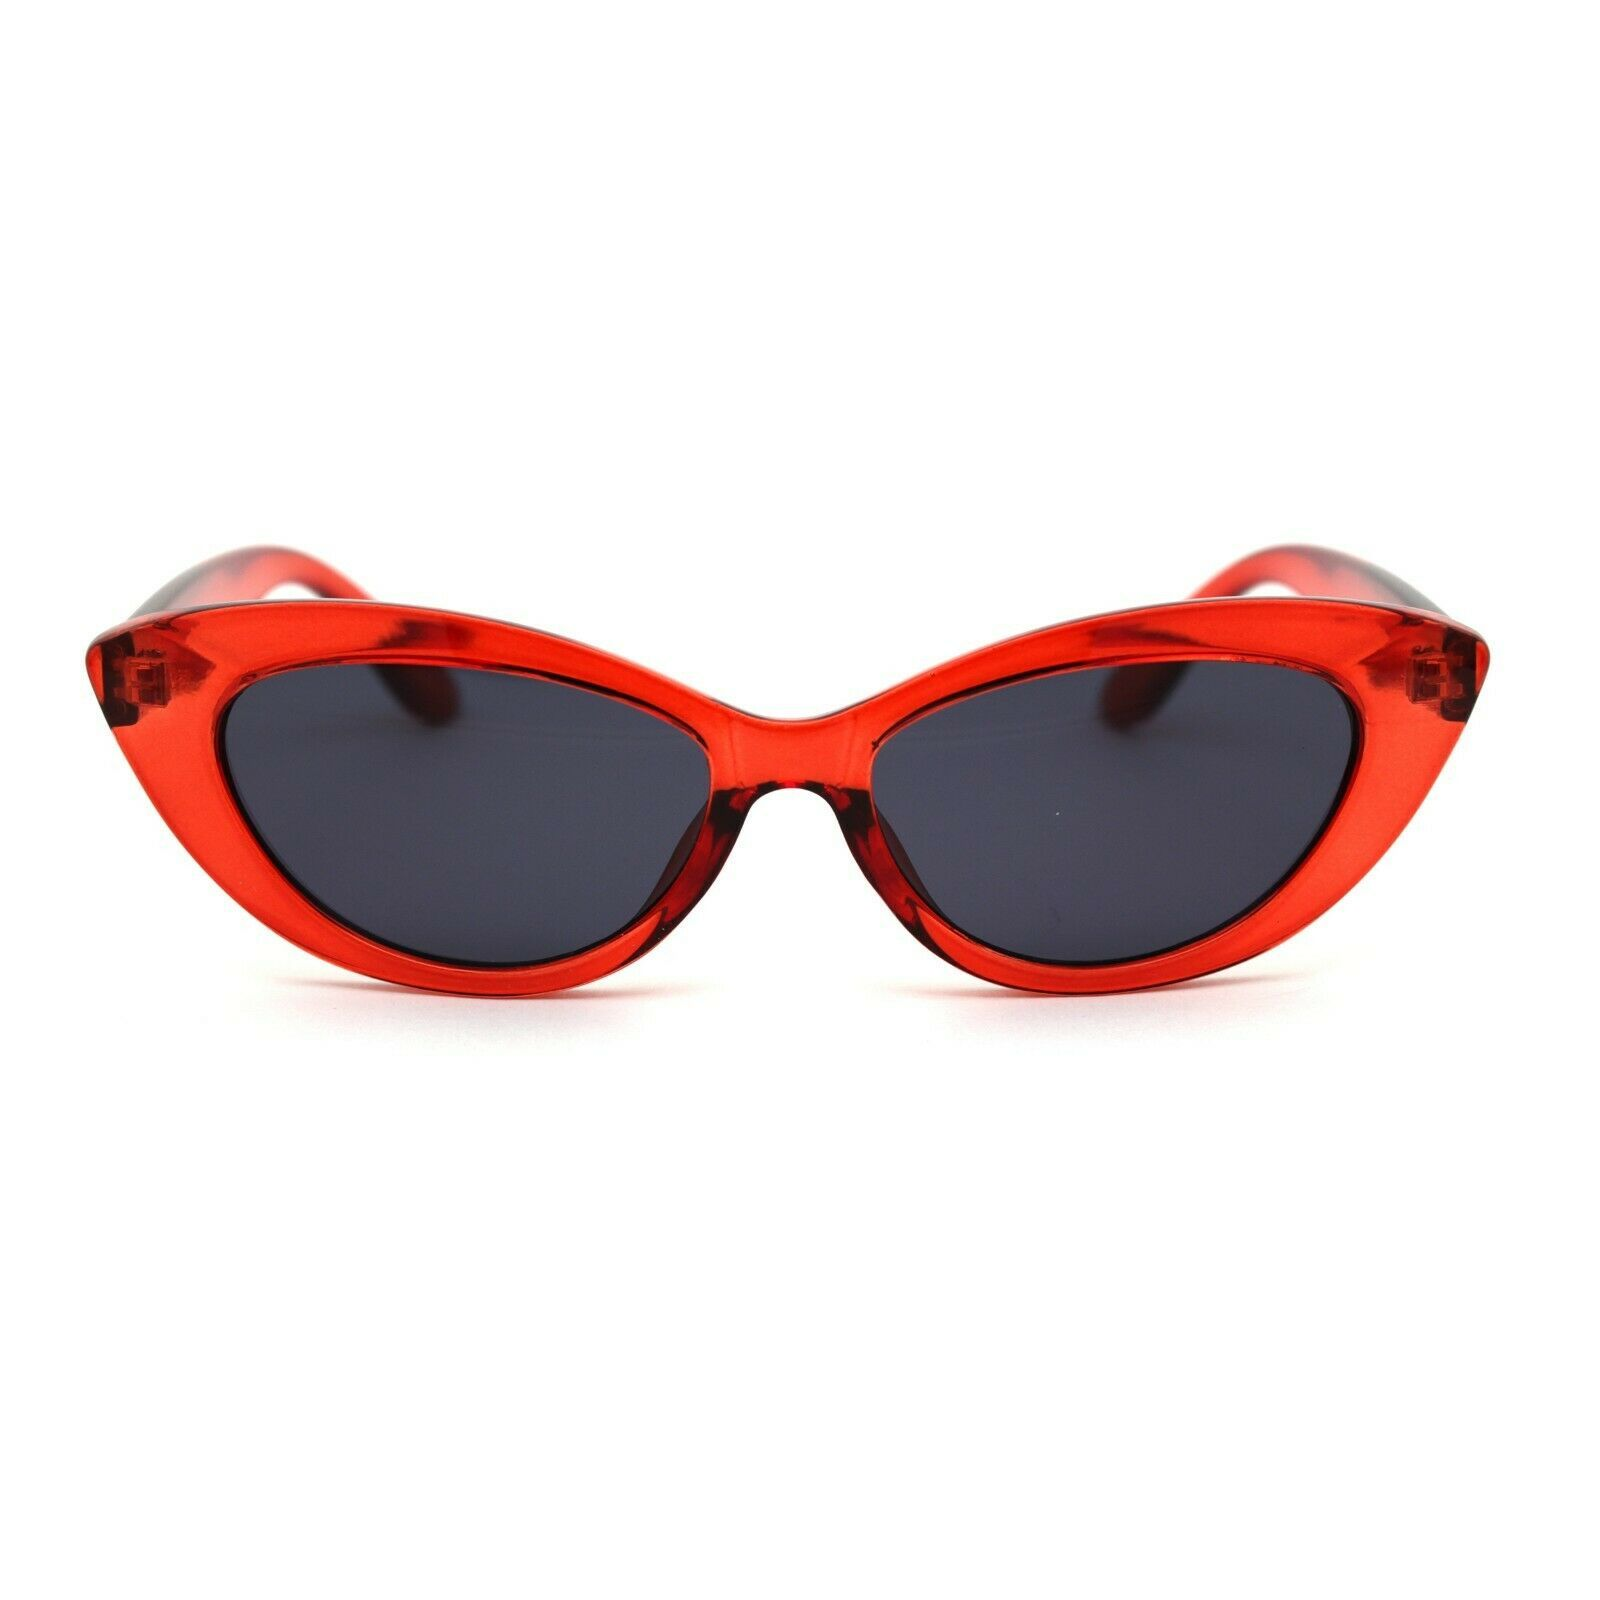 Womens Mod Thick Plastic Cat Eye Gothic Sunglasses